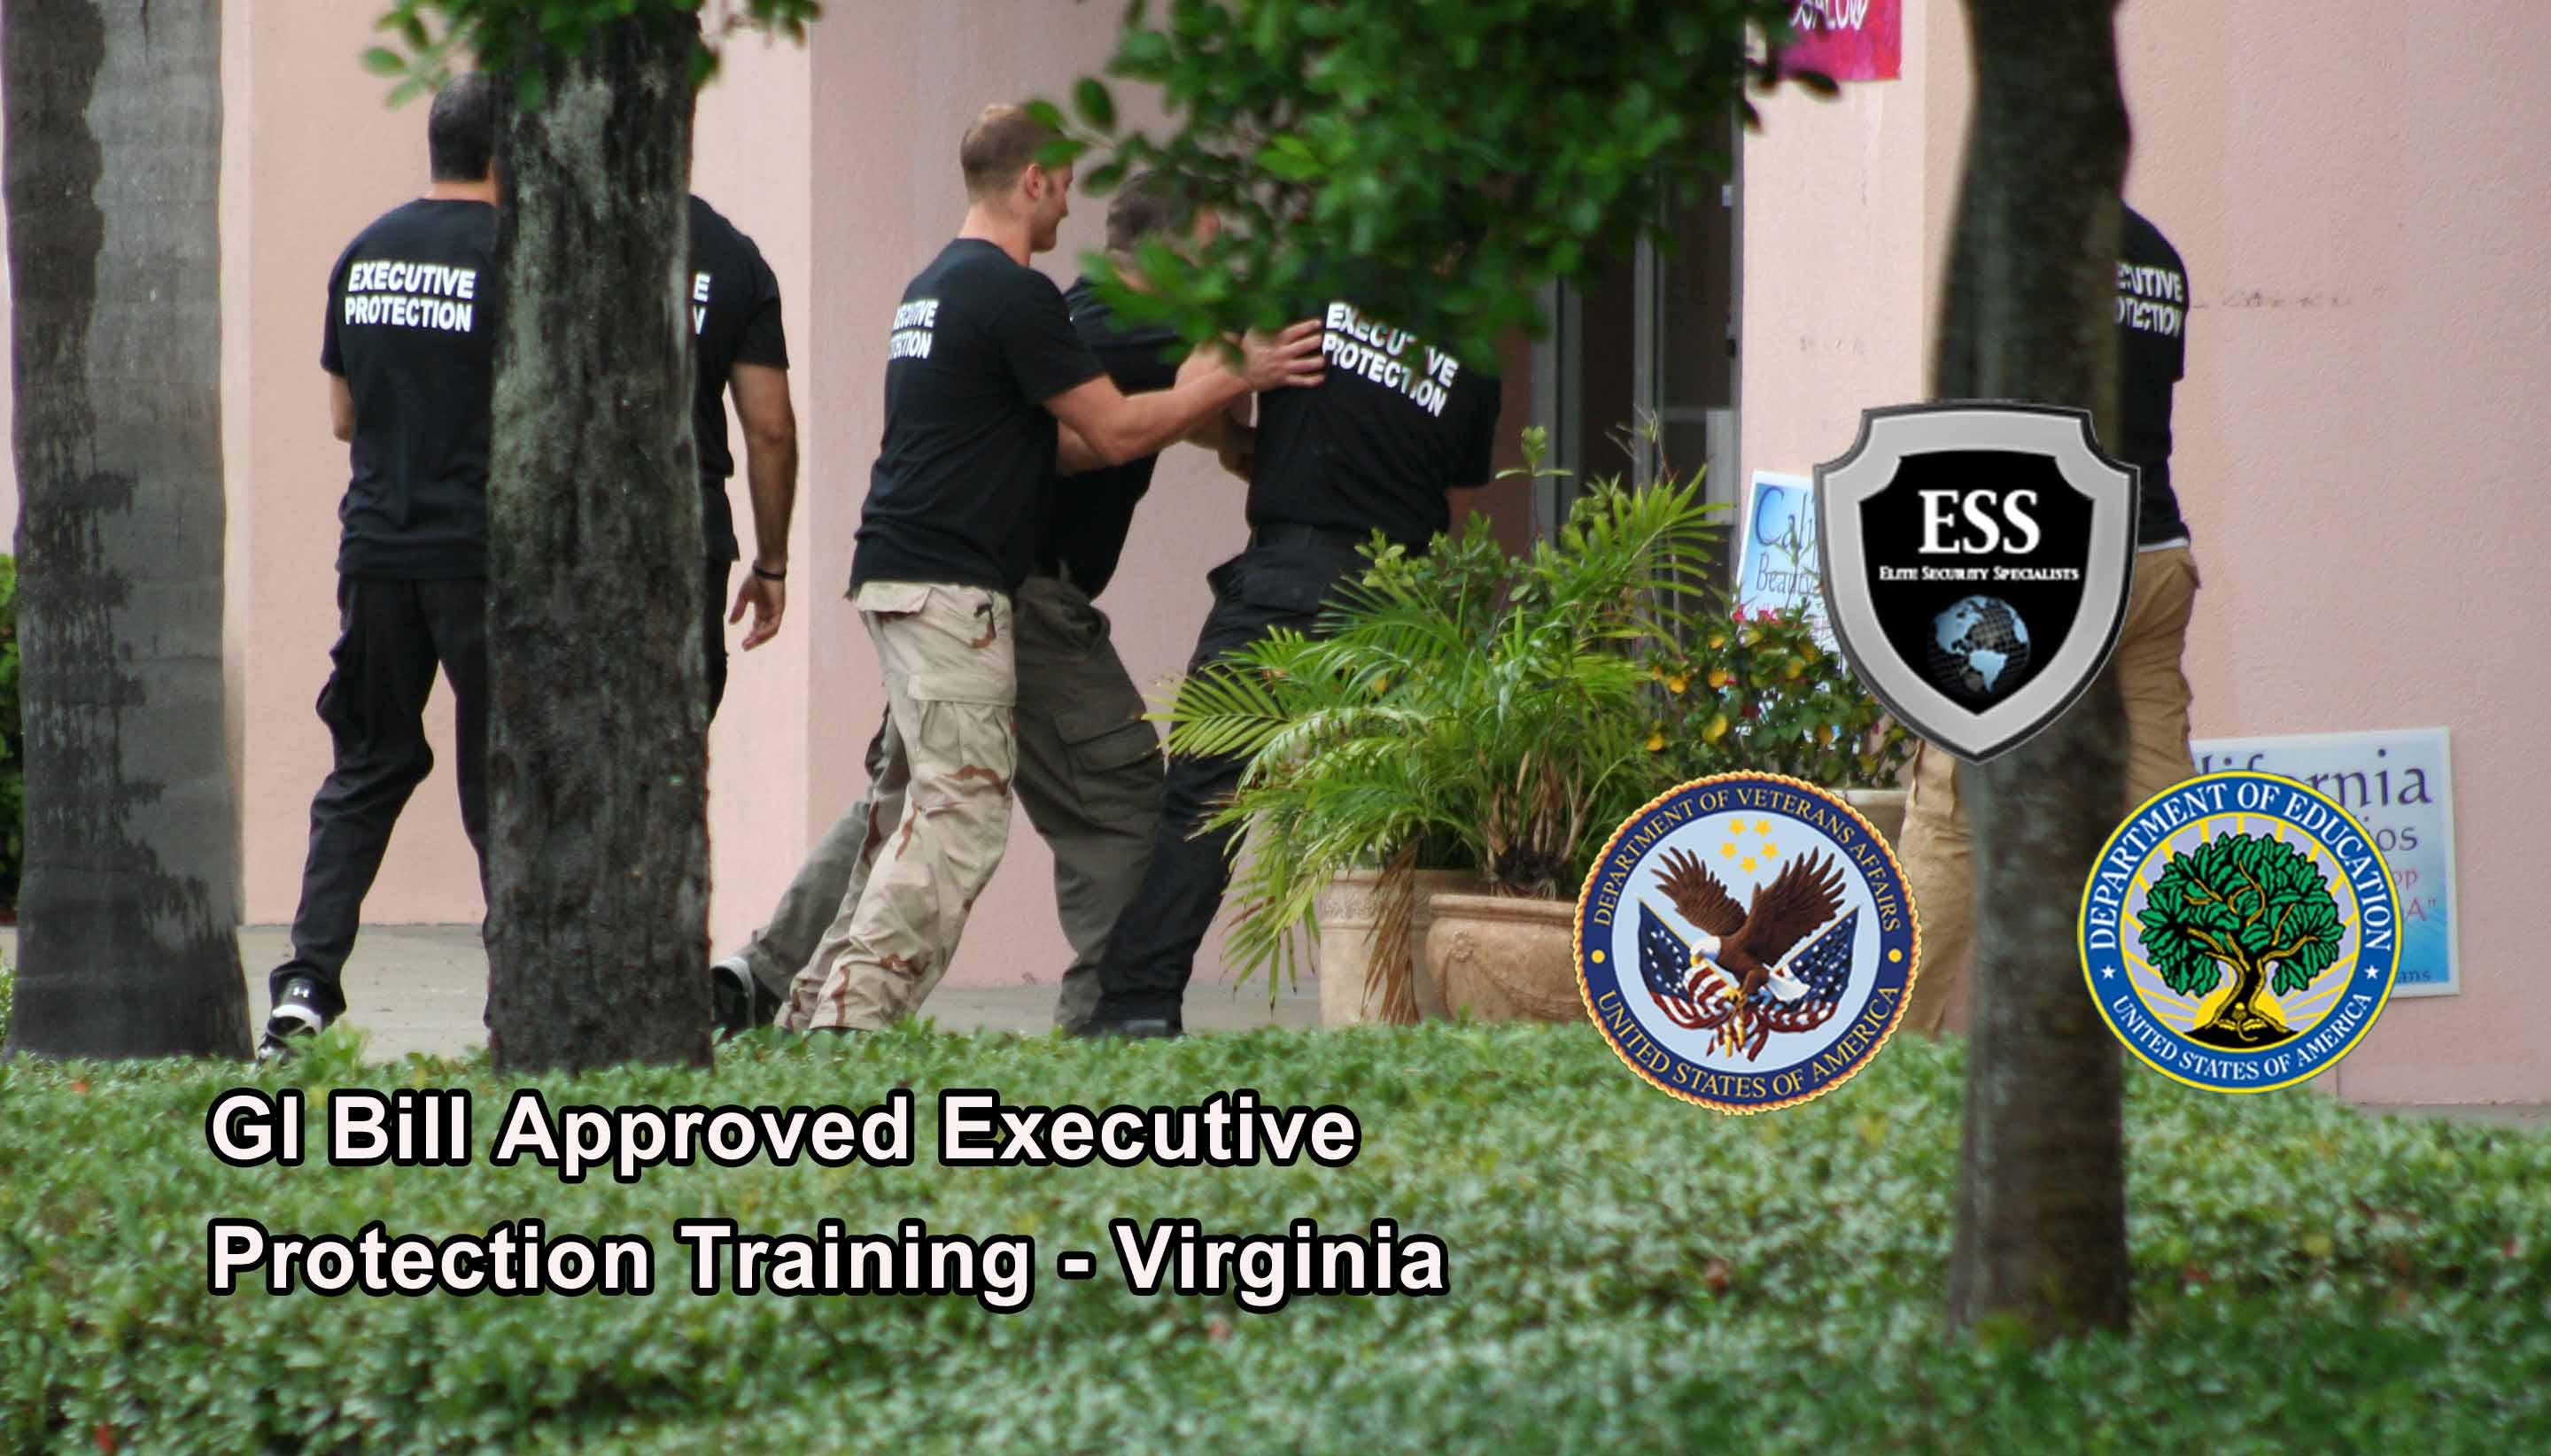 GI Bill Approved Executive Protection Training - Virginia